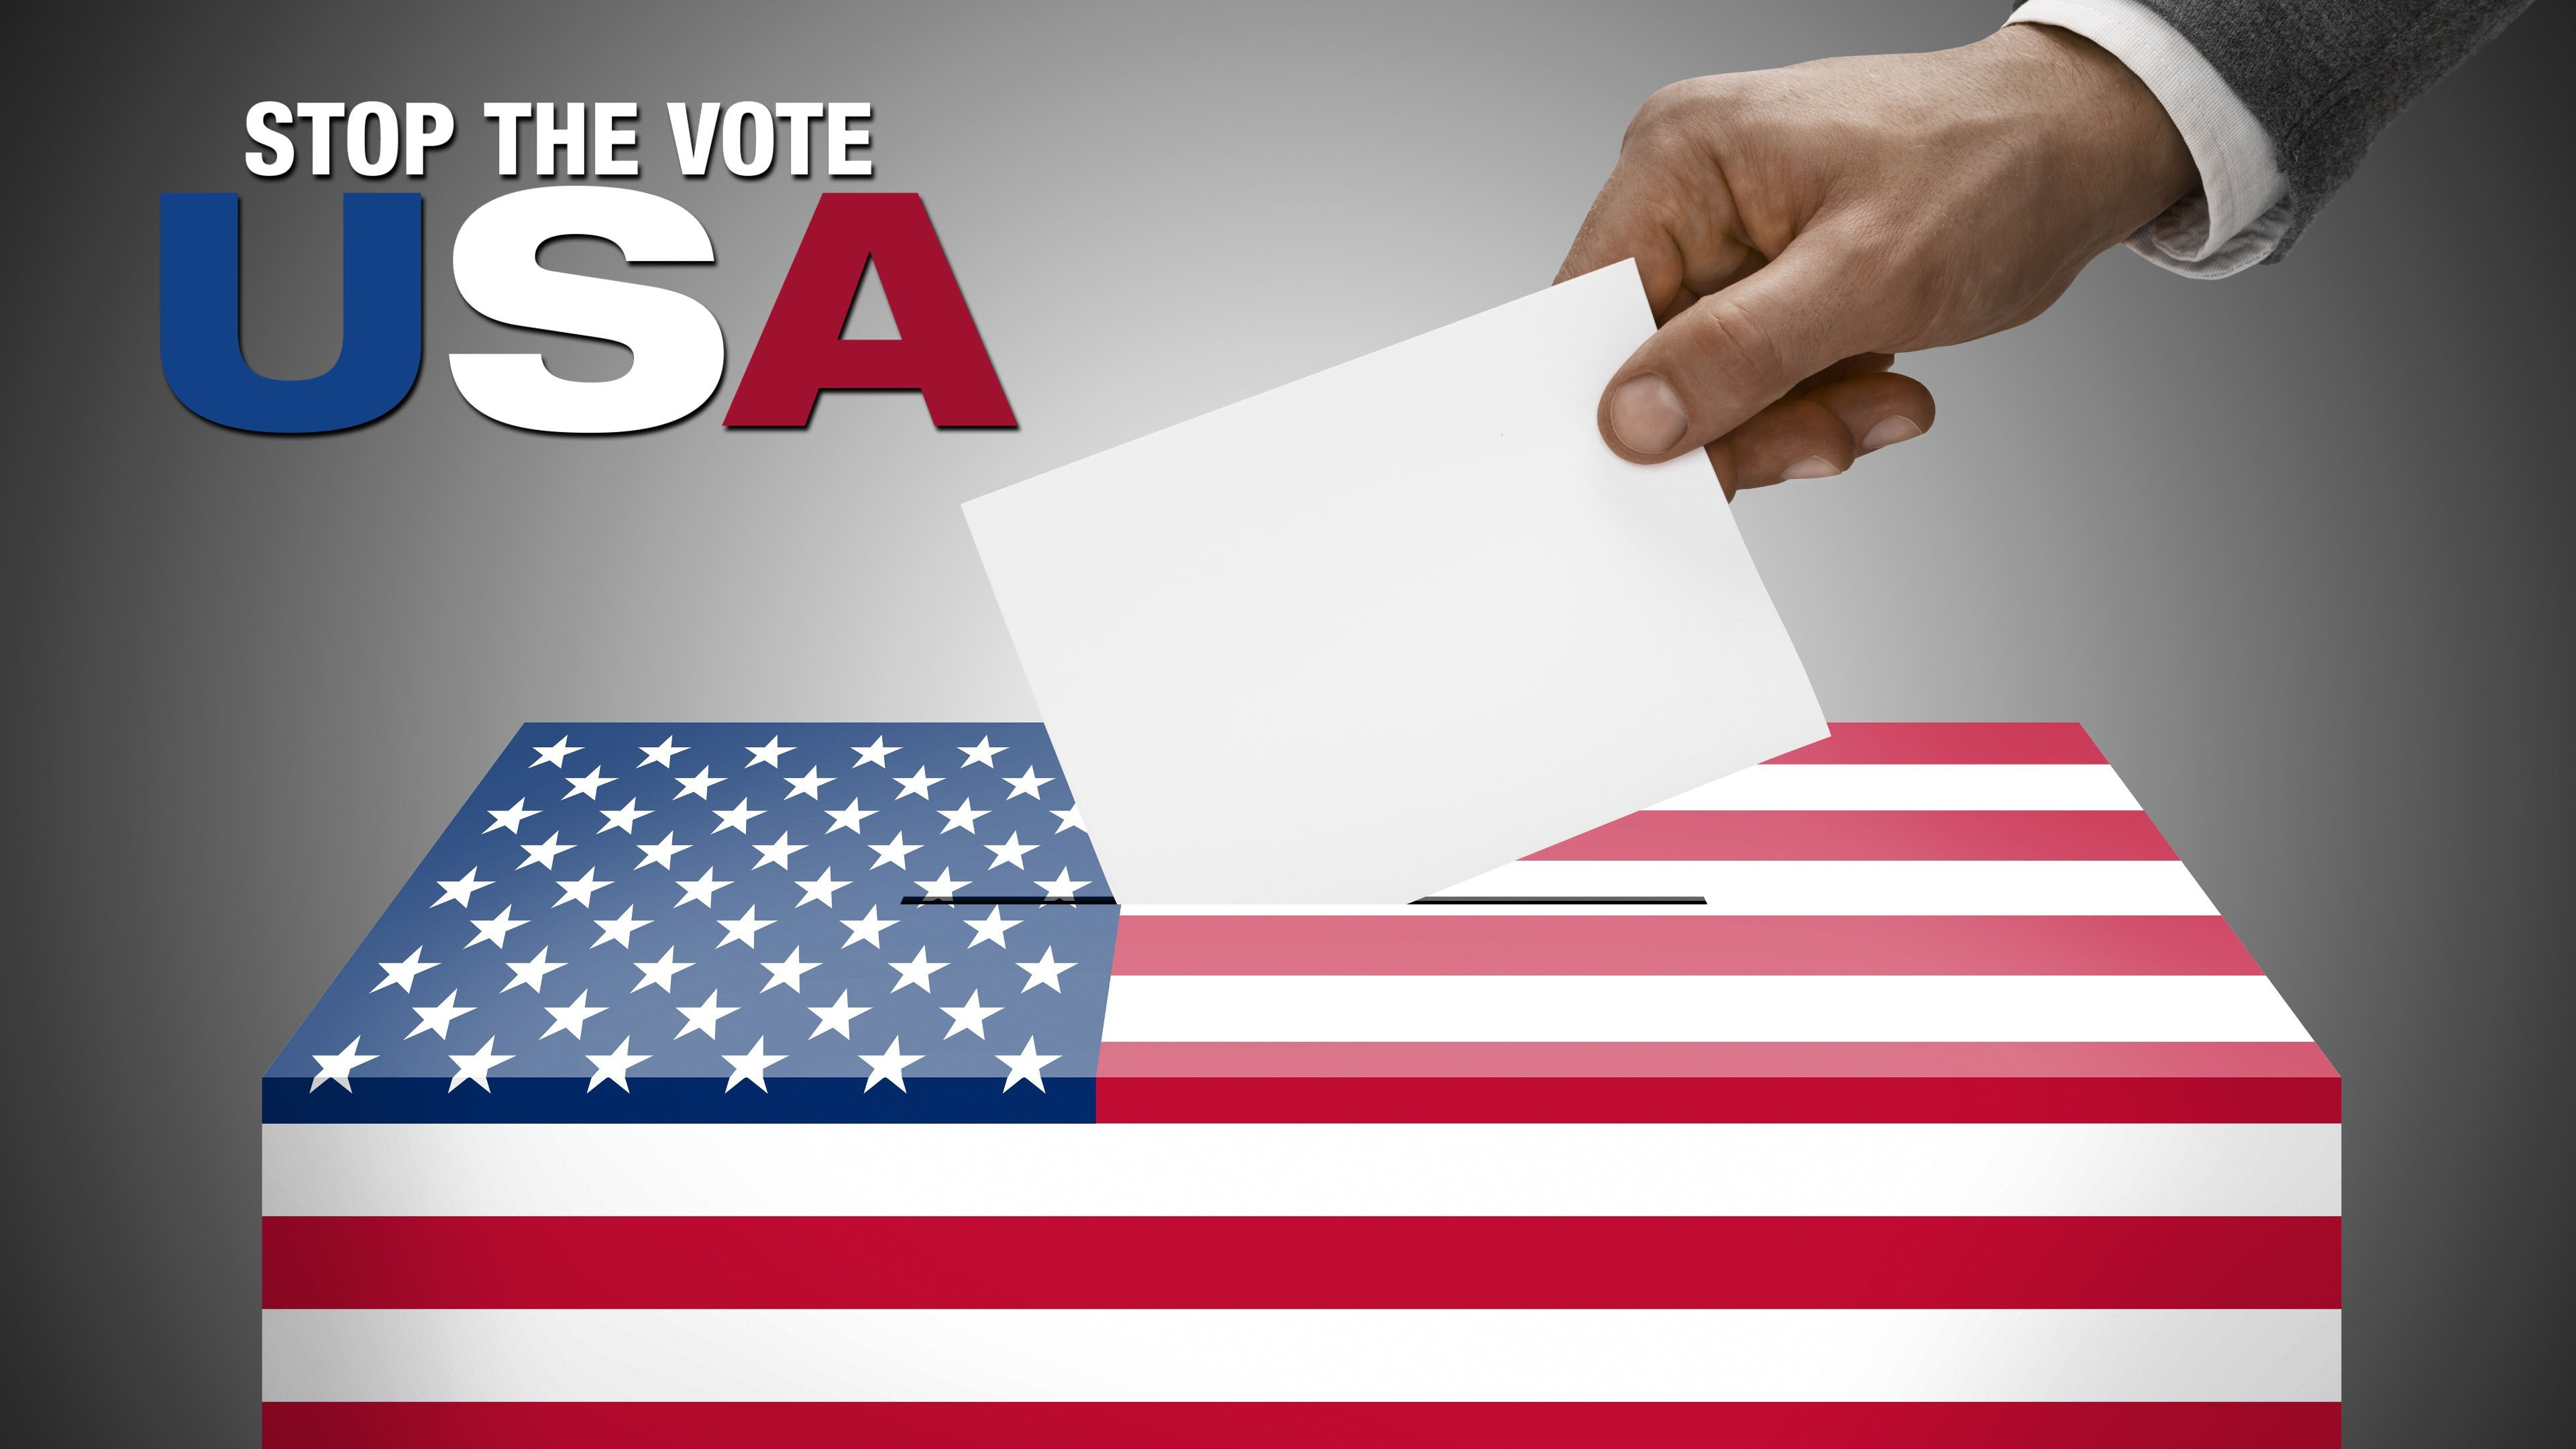 Stop the Vote USA